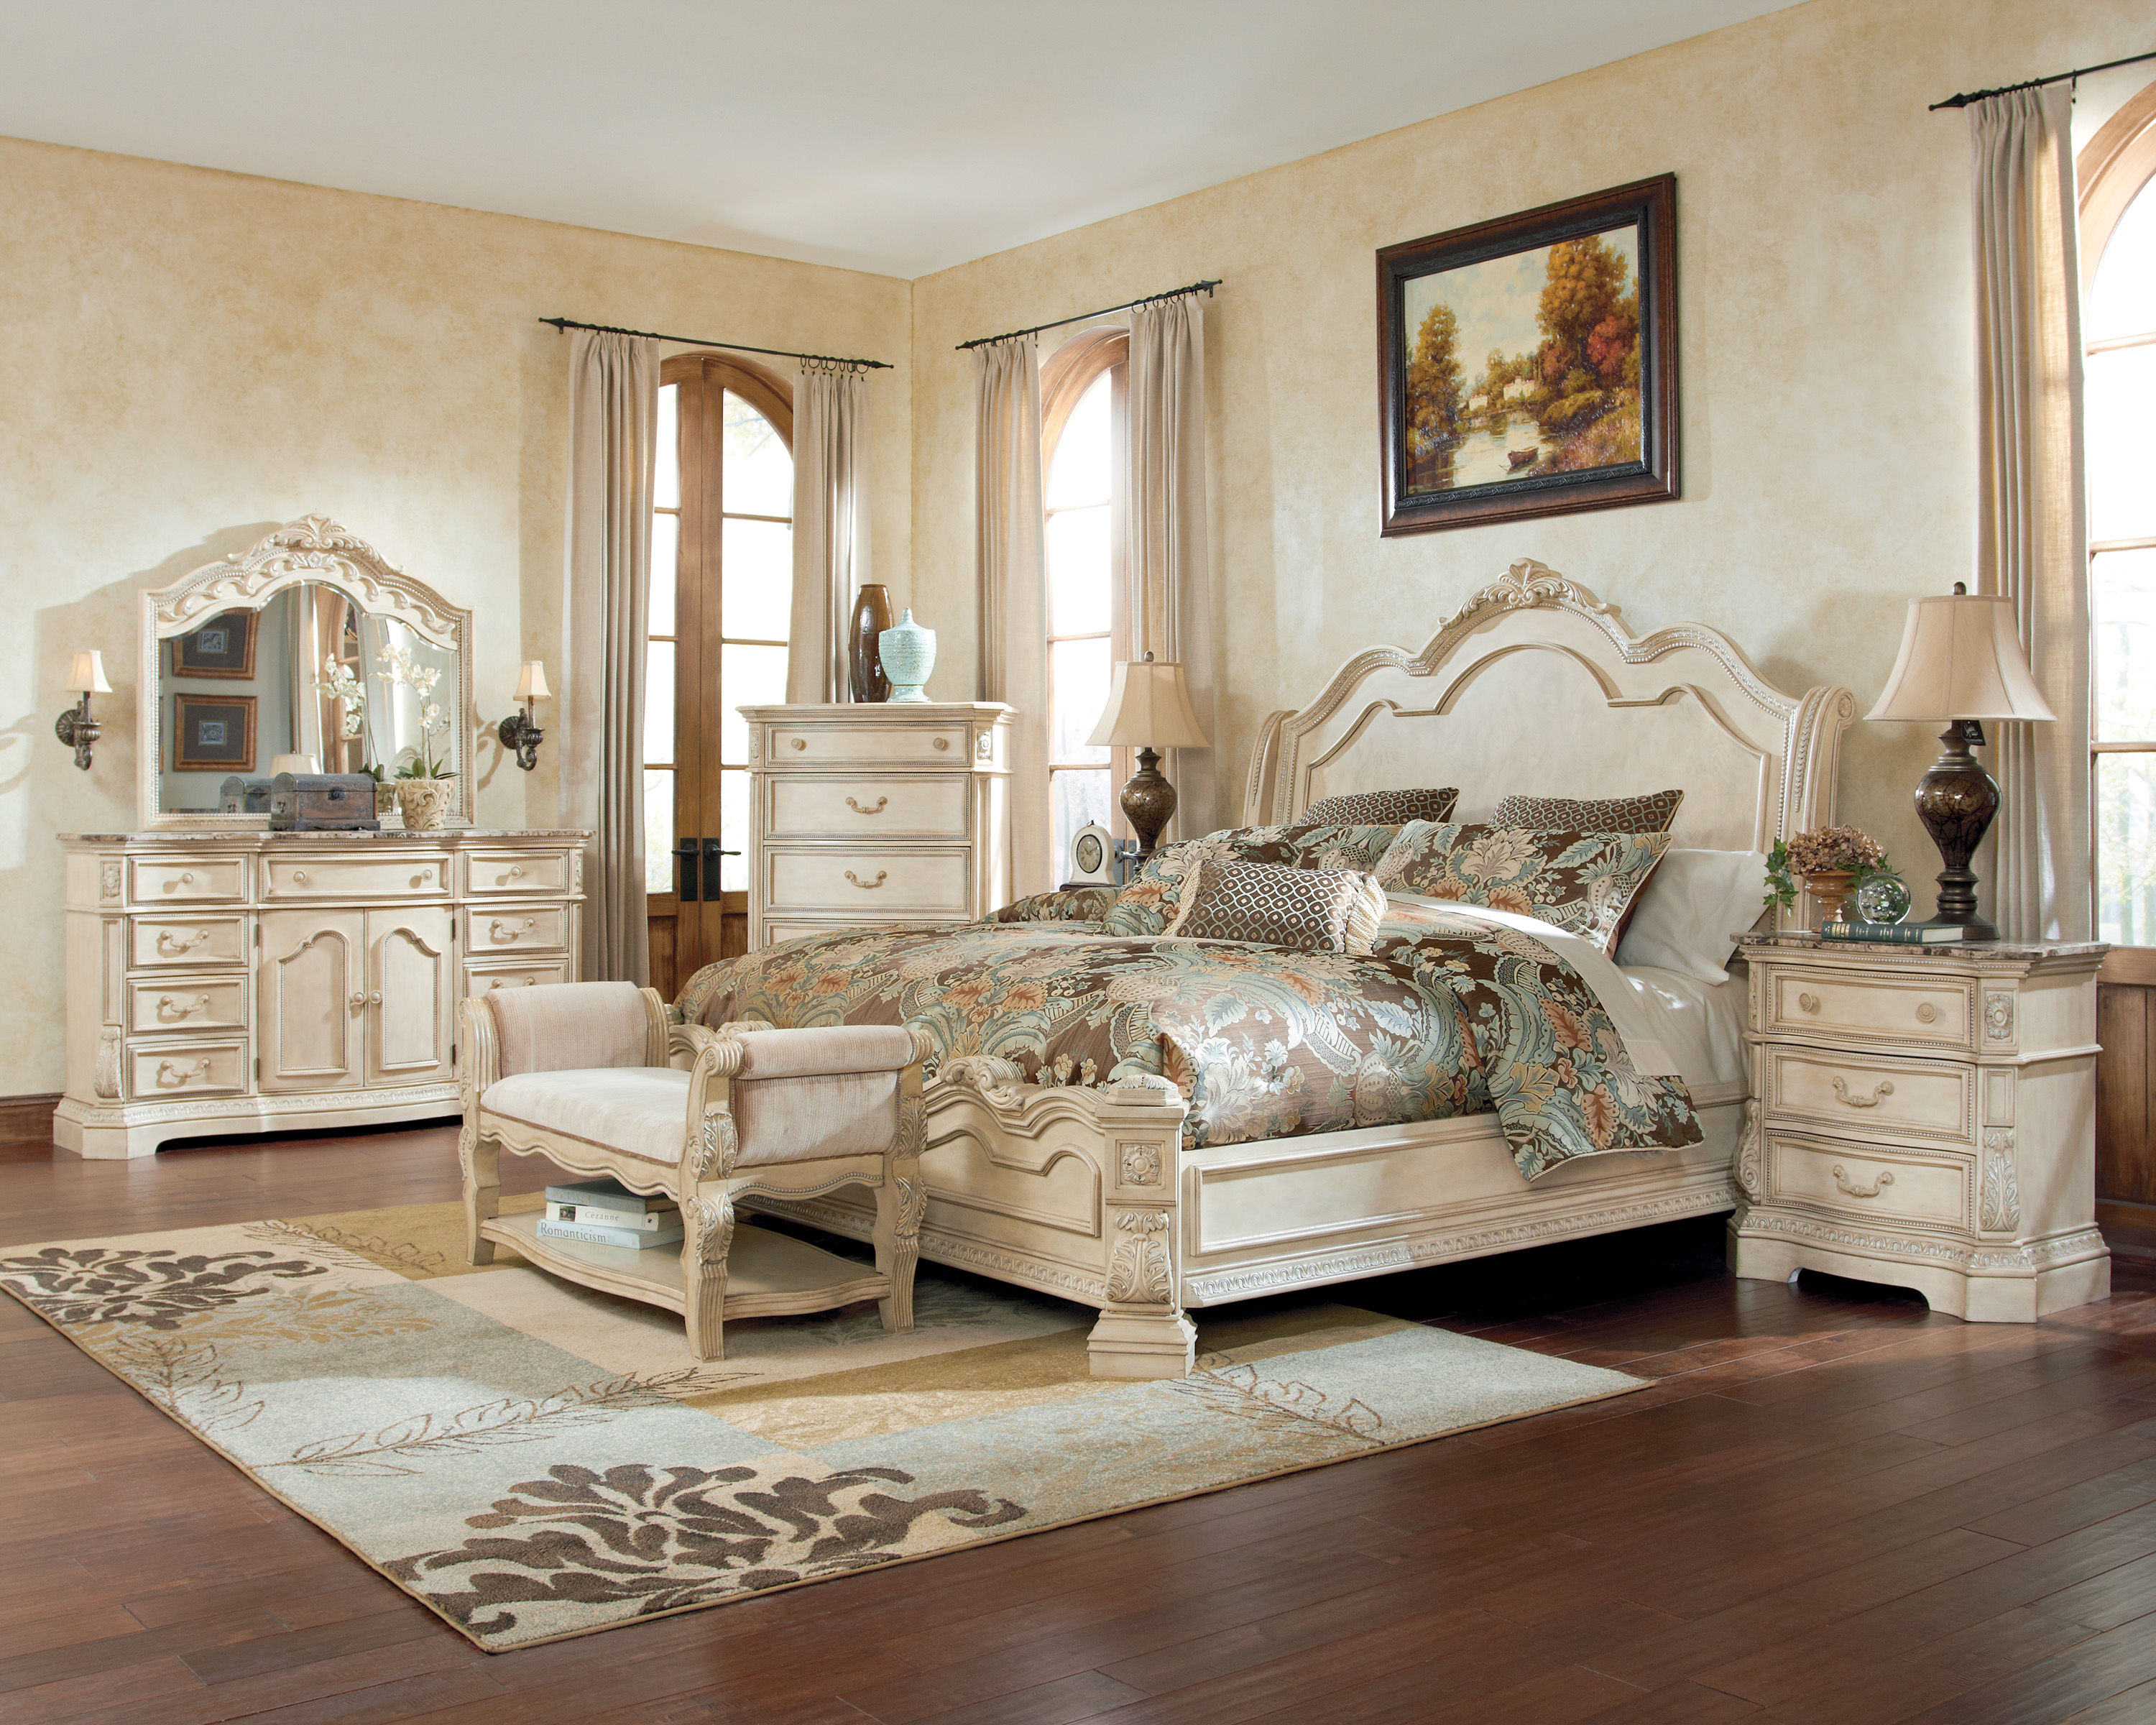 ortanique 5 pc bedroom set w king sleigh bed   the classy home